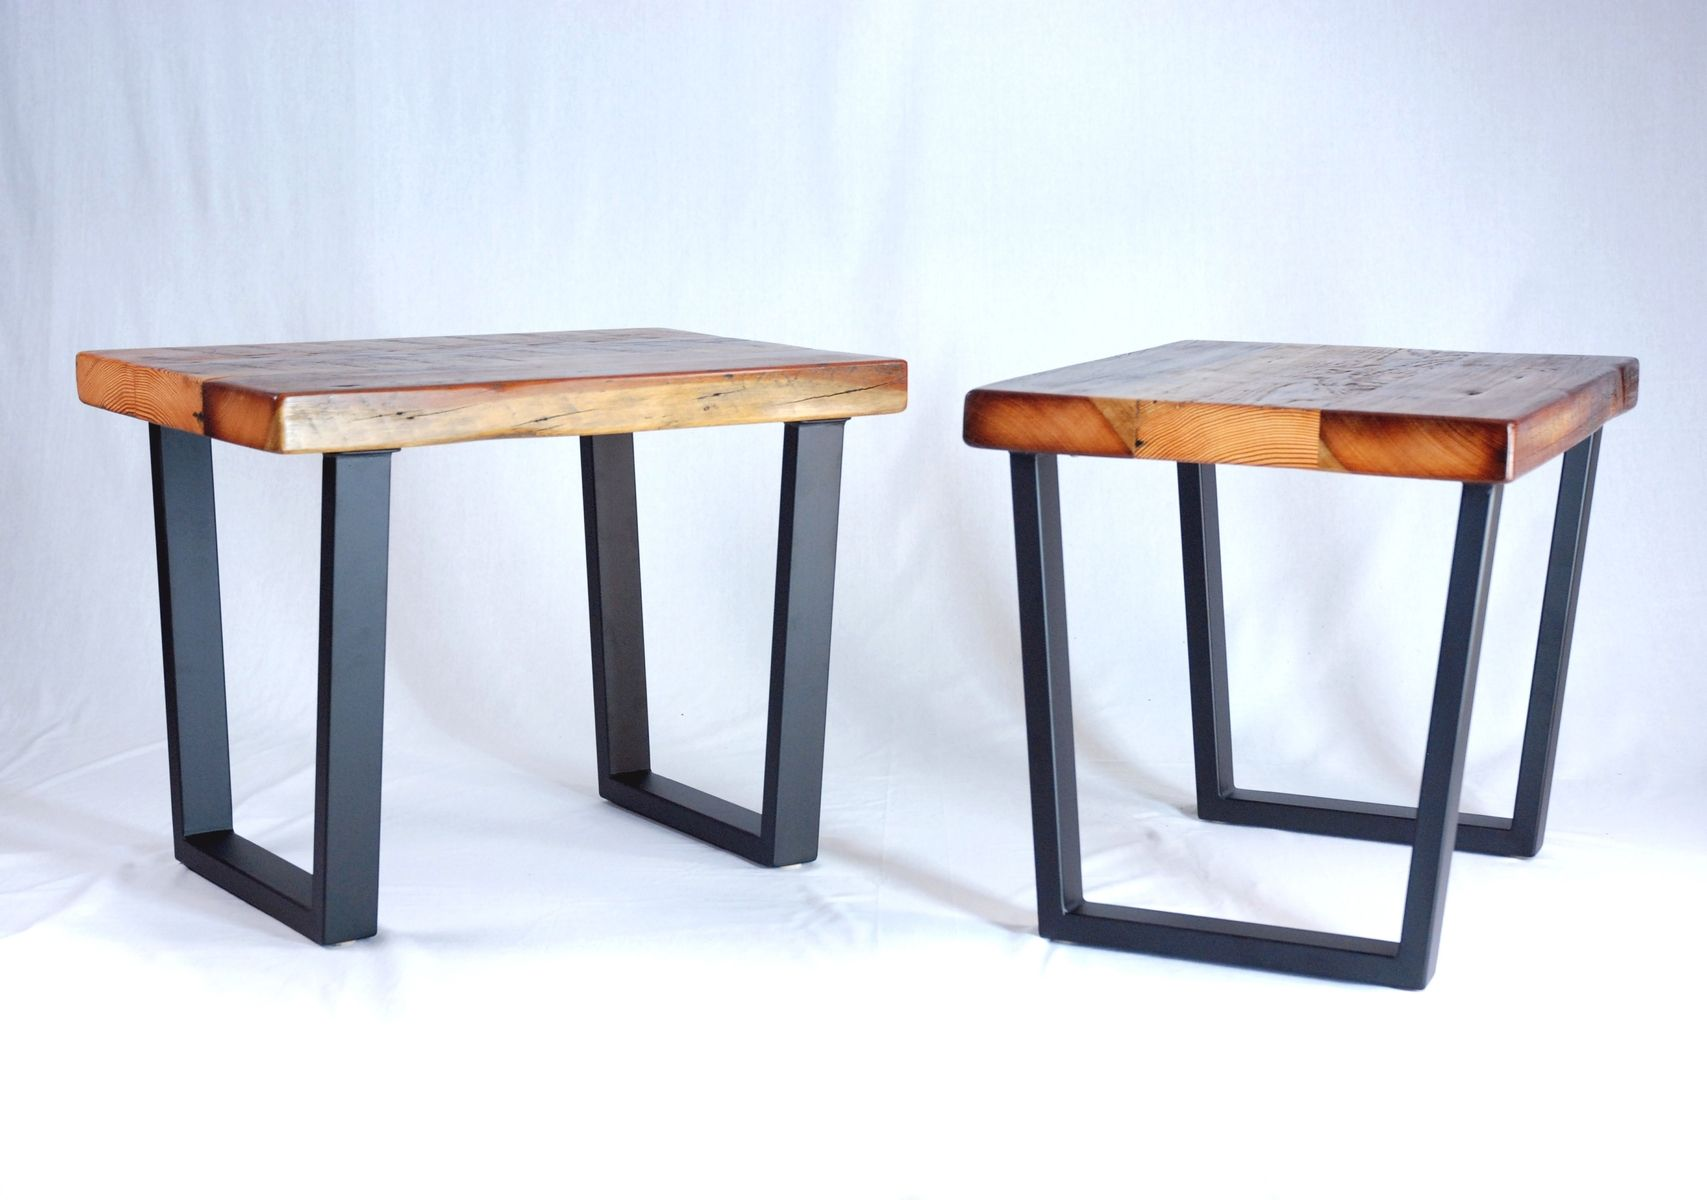 Industrial Reclaimed Timber End Table Set Entryway Table Decor Small Entryway Table Reclaimed Wood Coffee Table [ 1200 x 1707 Pixel ]